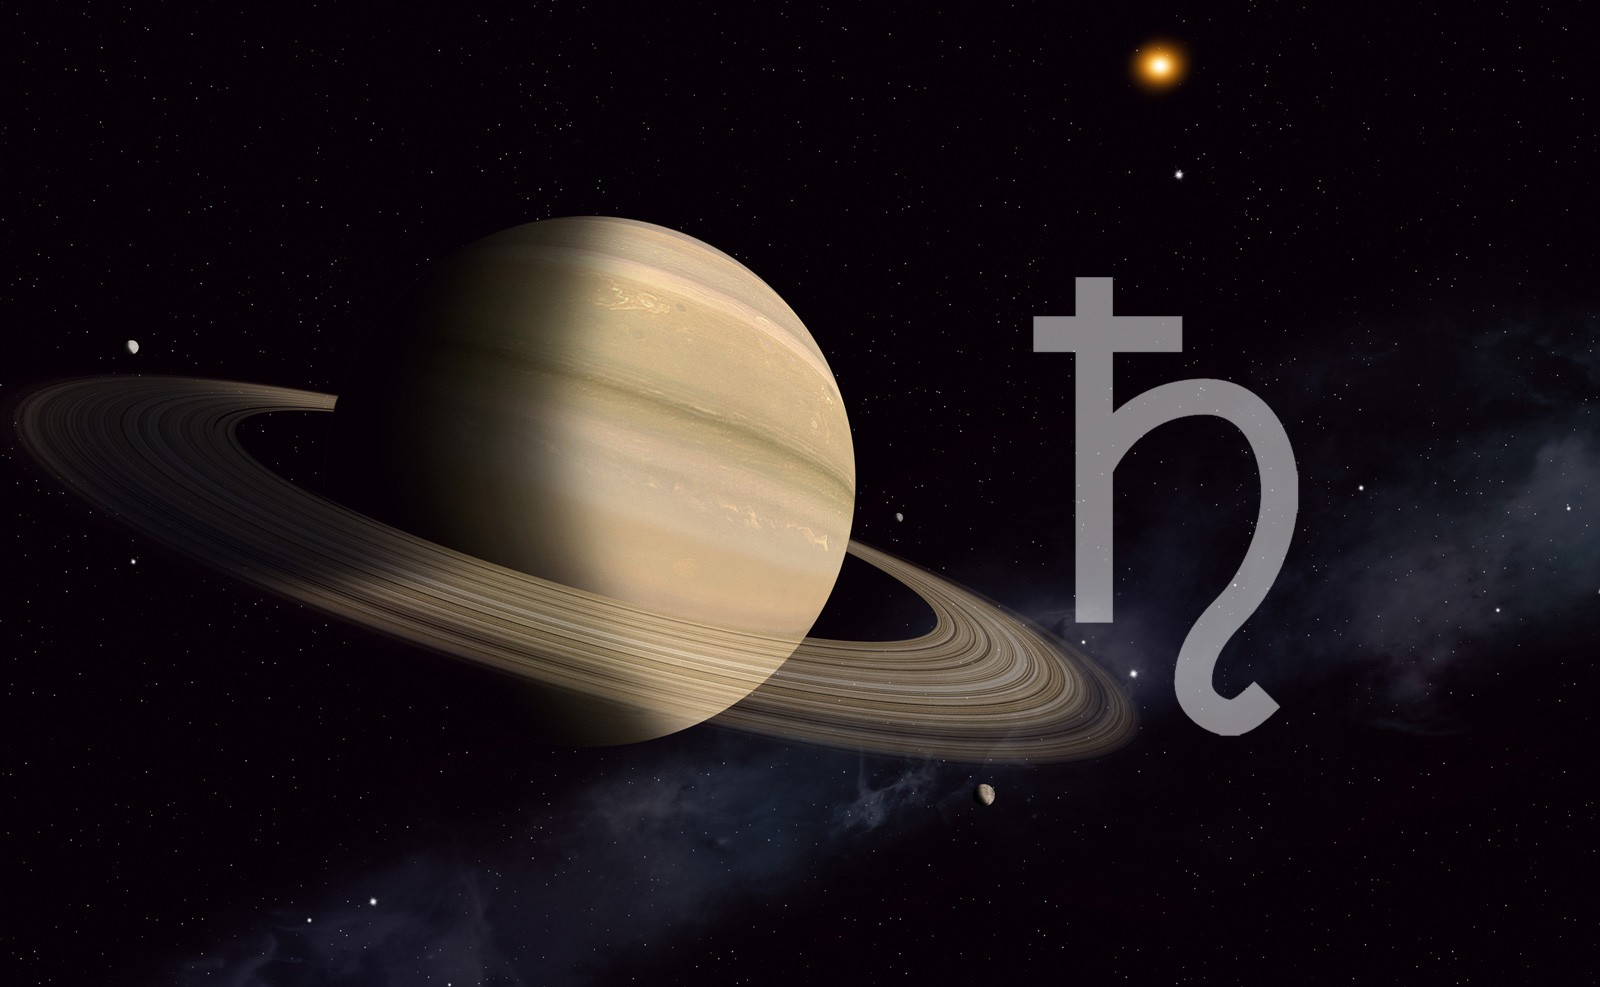 Saturn Symbol Meaning And Planet Meaning On Whats Your Sign